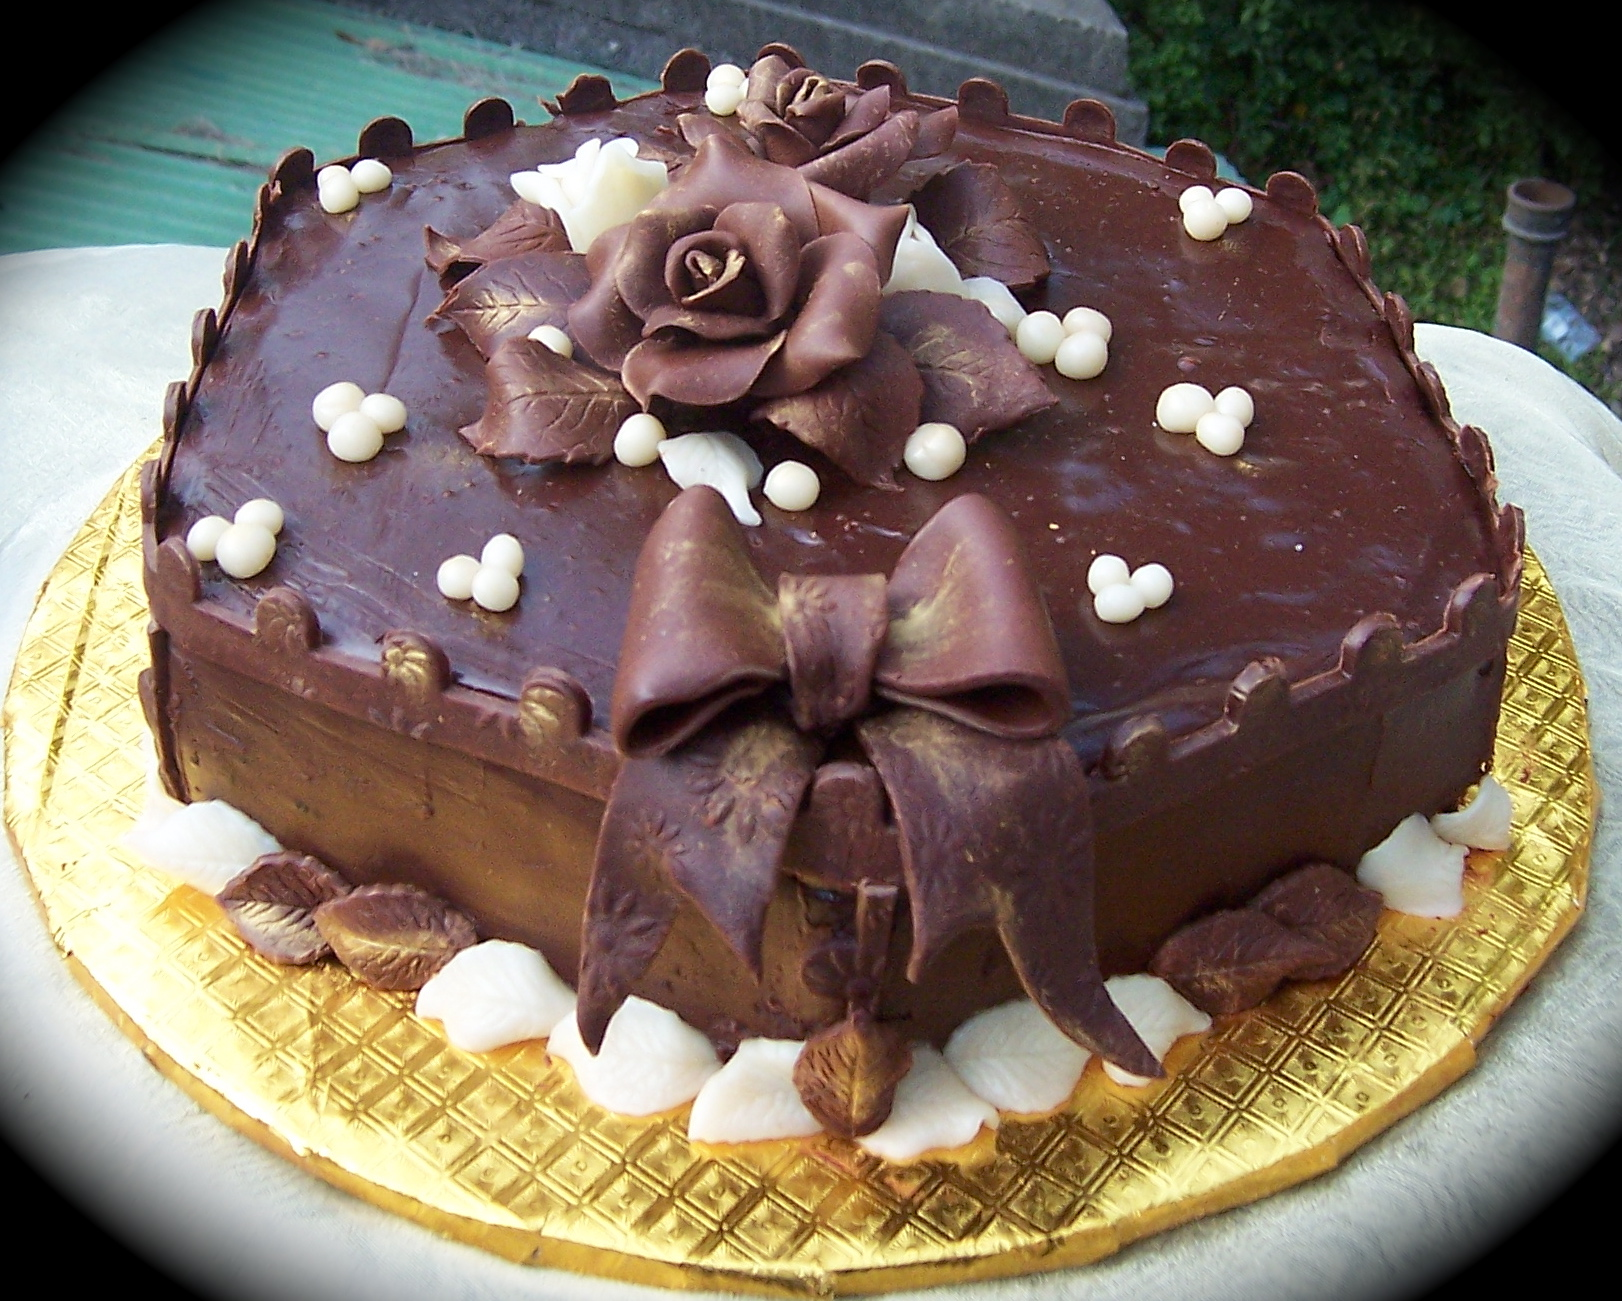 41281-cakes-chocolate-cake-with-chocolate-rose[1]